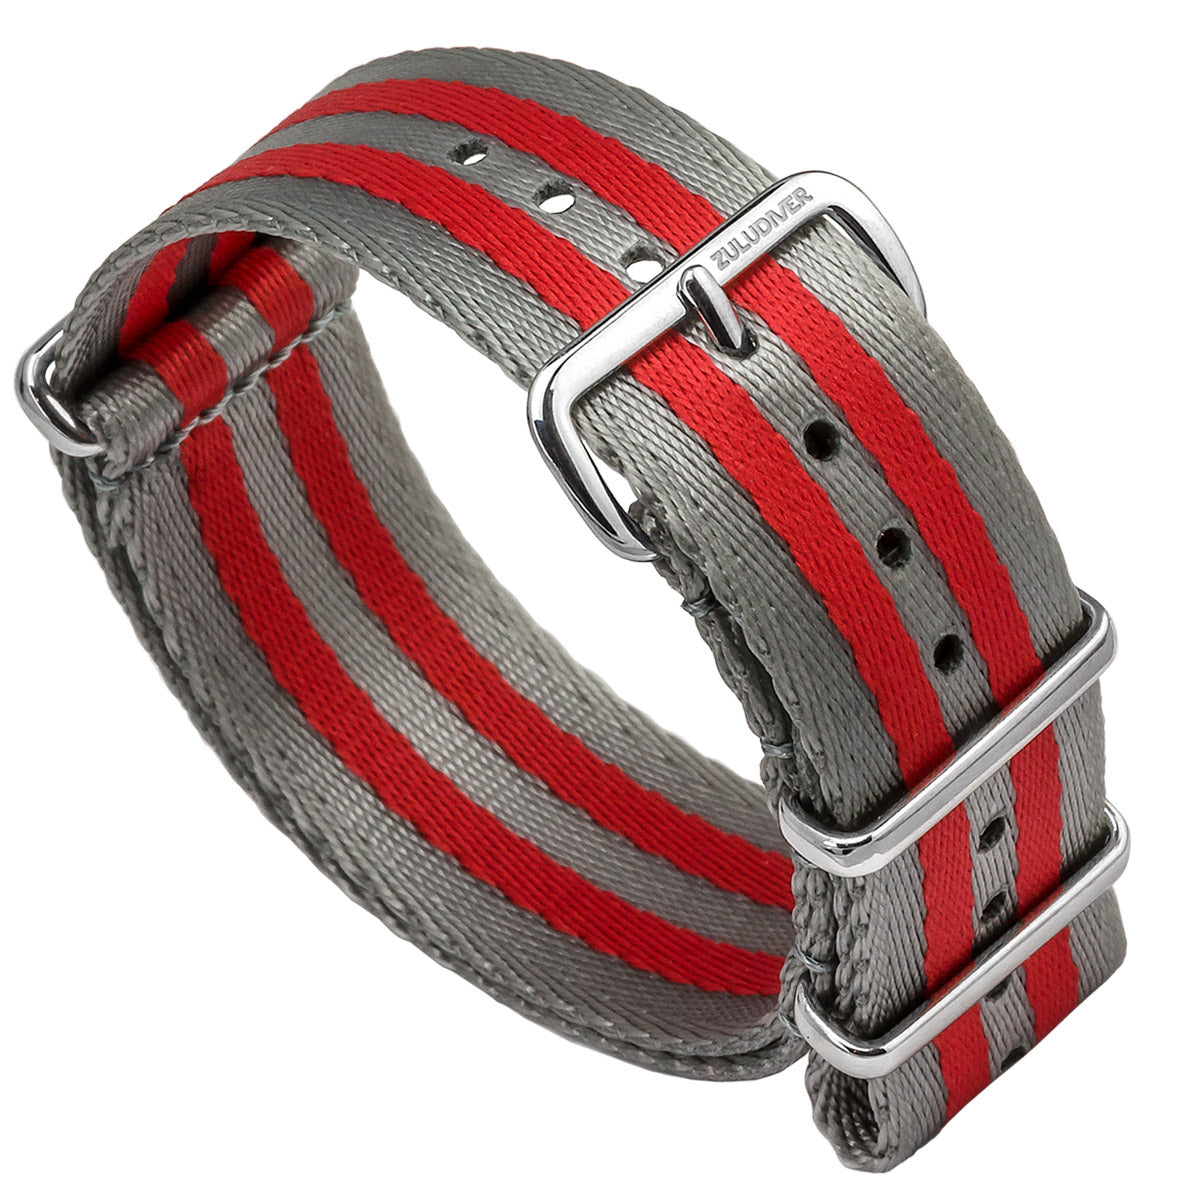 Professional ZULUDIVER Striped Herringbone NATO Watch Strap, Polished Hardware